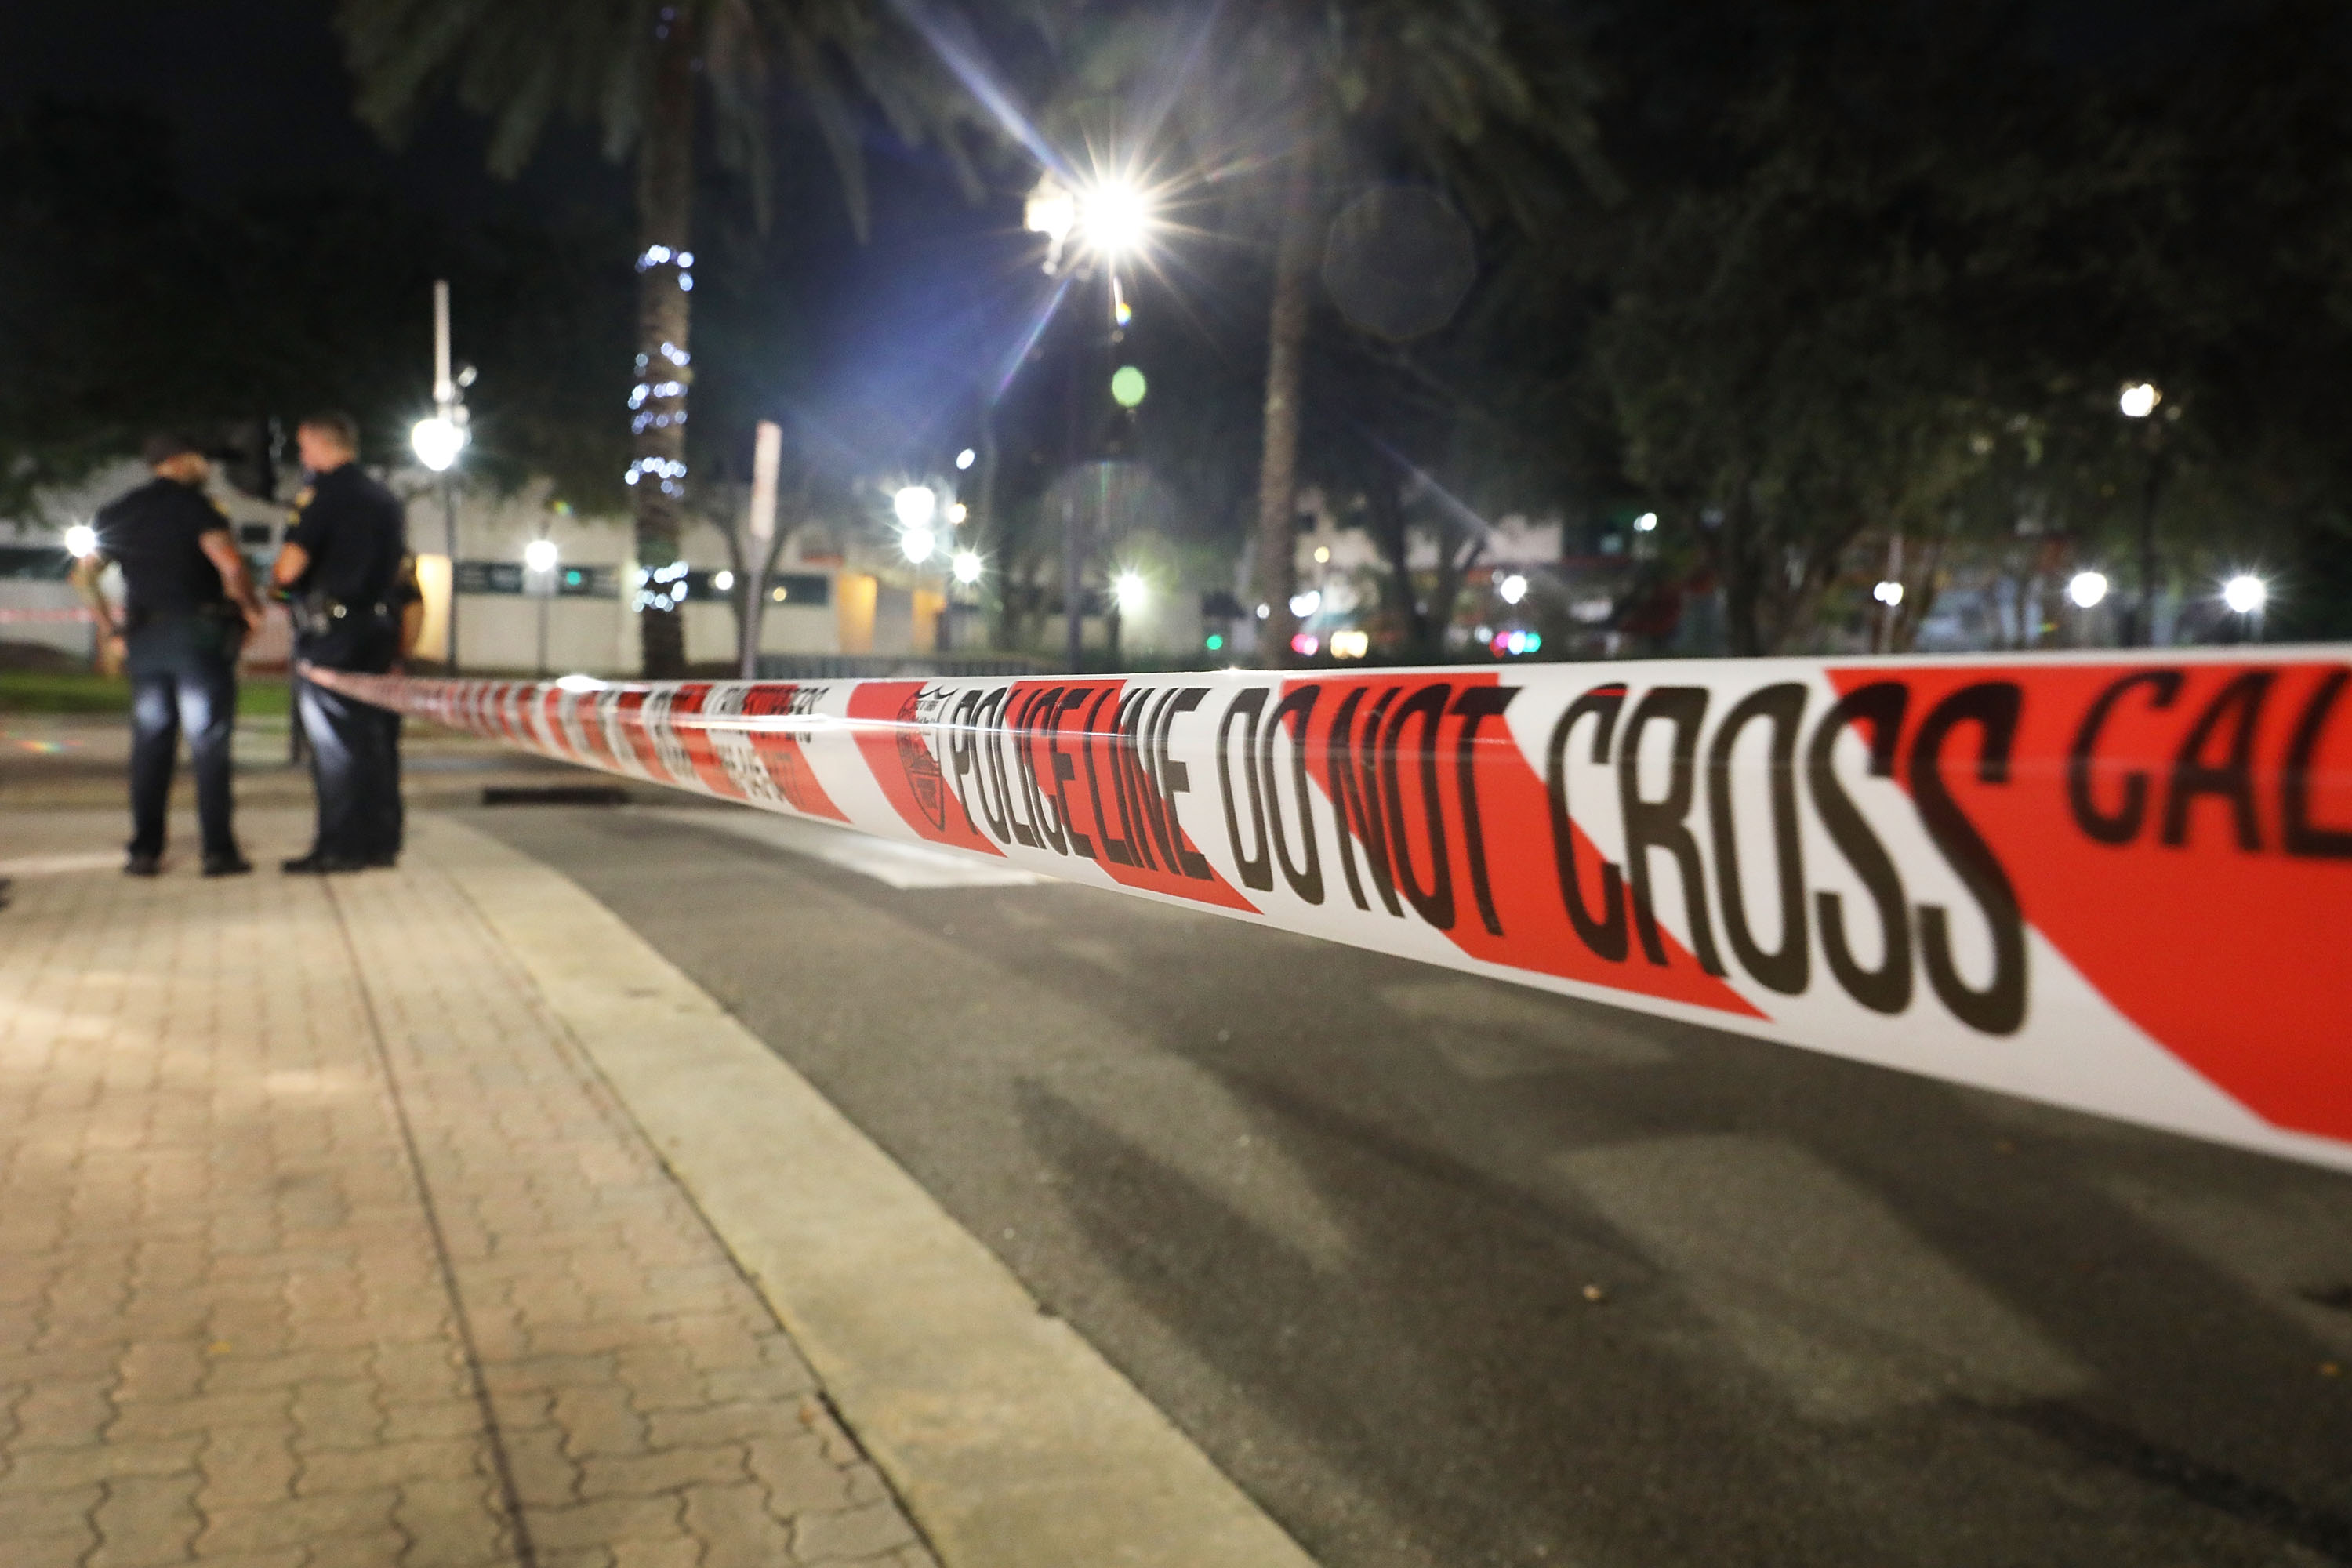 Police tape is seen as law enforcement officials investigate a shooting at the GLHF Game Bar located in the Jacksonville Landing on August 27, 2018.